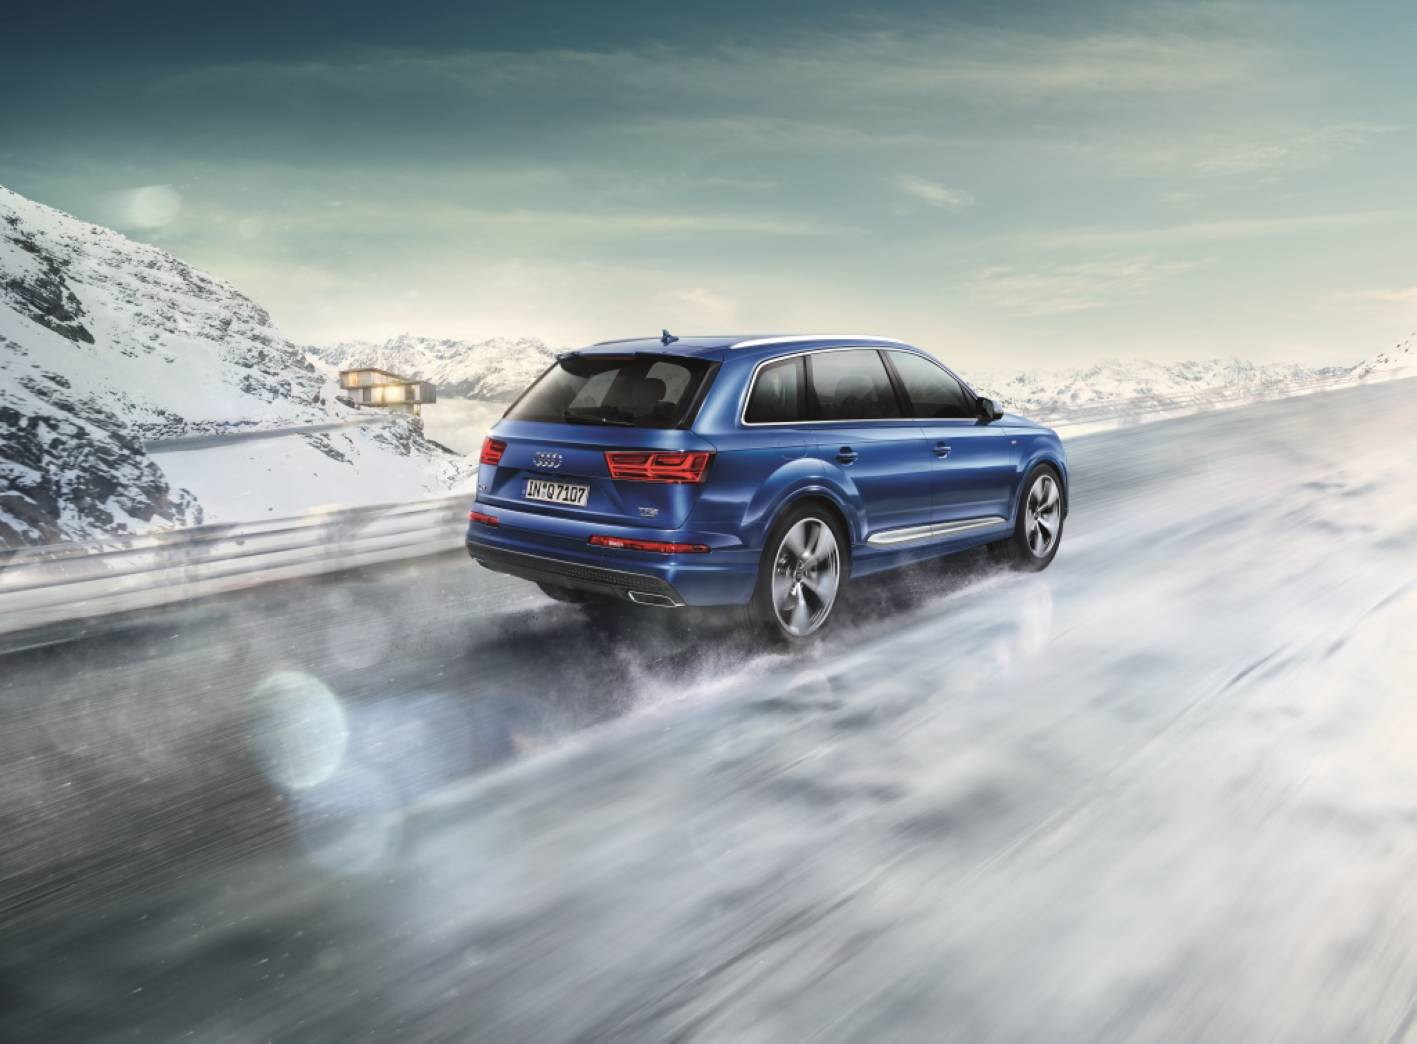 News Audi Launches Snow Driving At Mt Hotham